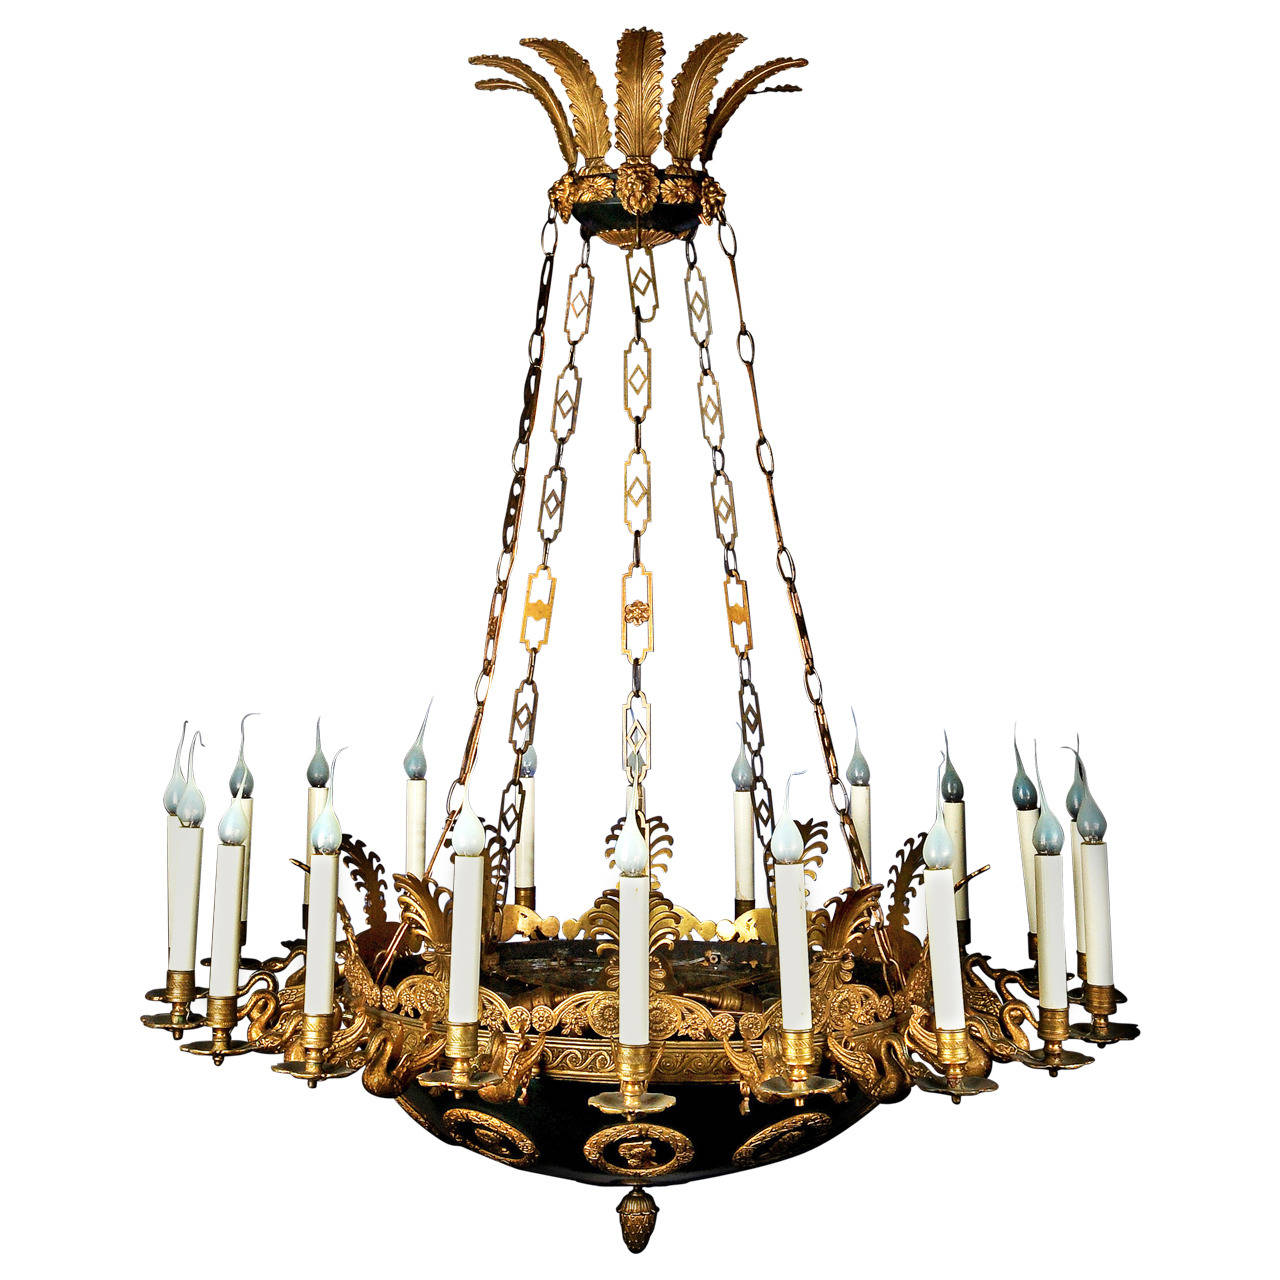 Impressive and Large Antique French Empire Gilt and Patina Bronze Chandelier - Impressive And Large Antique French Empire Gilt And Patina Bronze